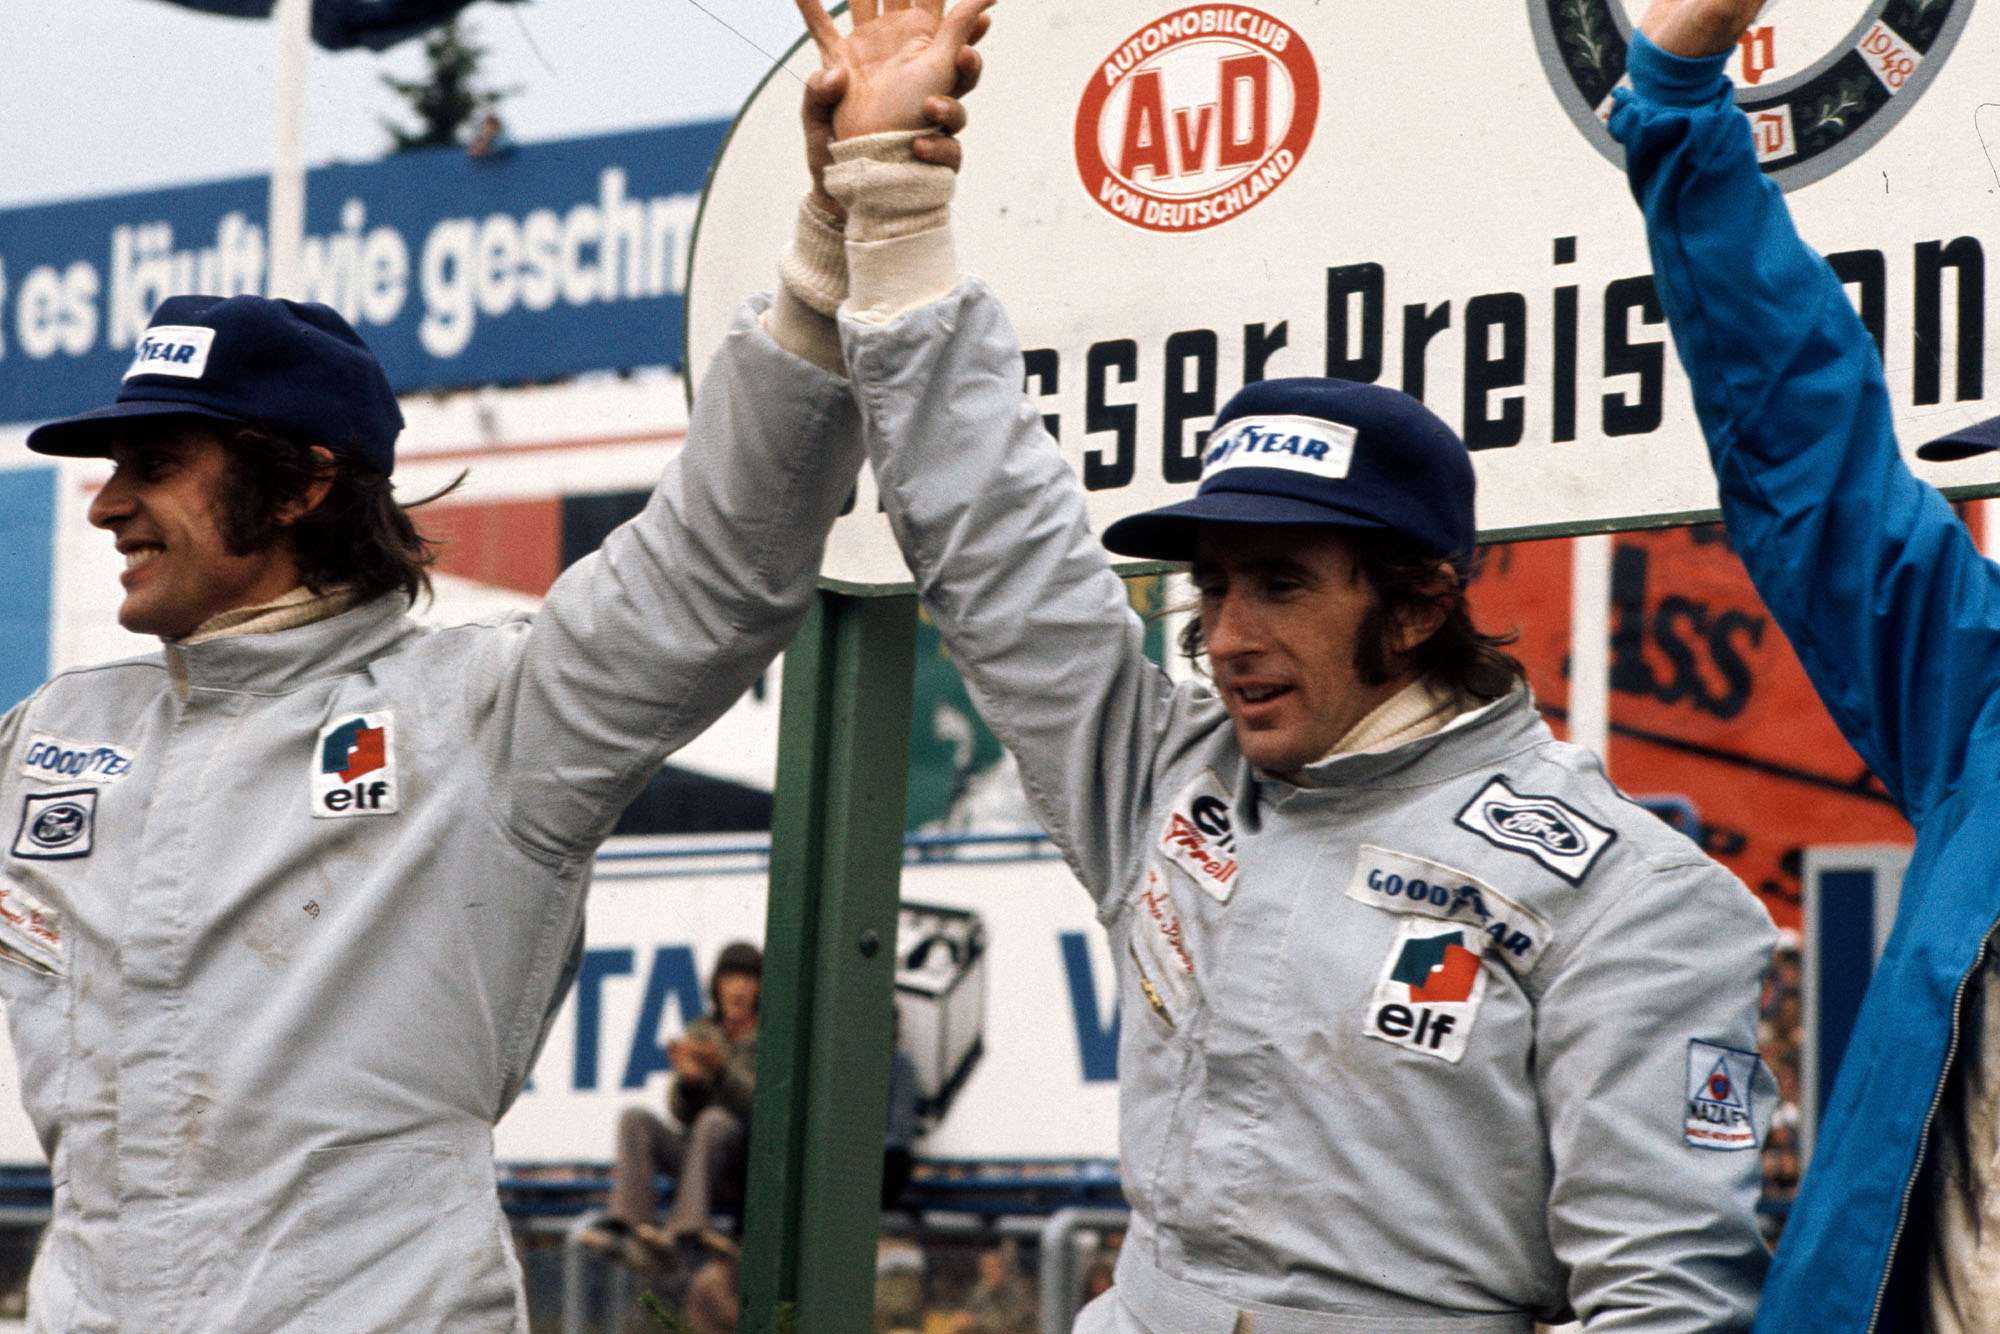 Tyrell drivers Francois Cevert (left) and Jackie Stewart celebrate on the podium.